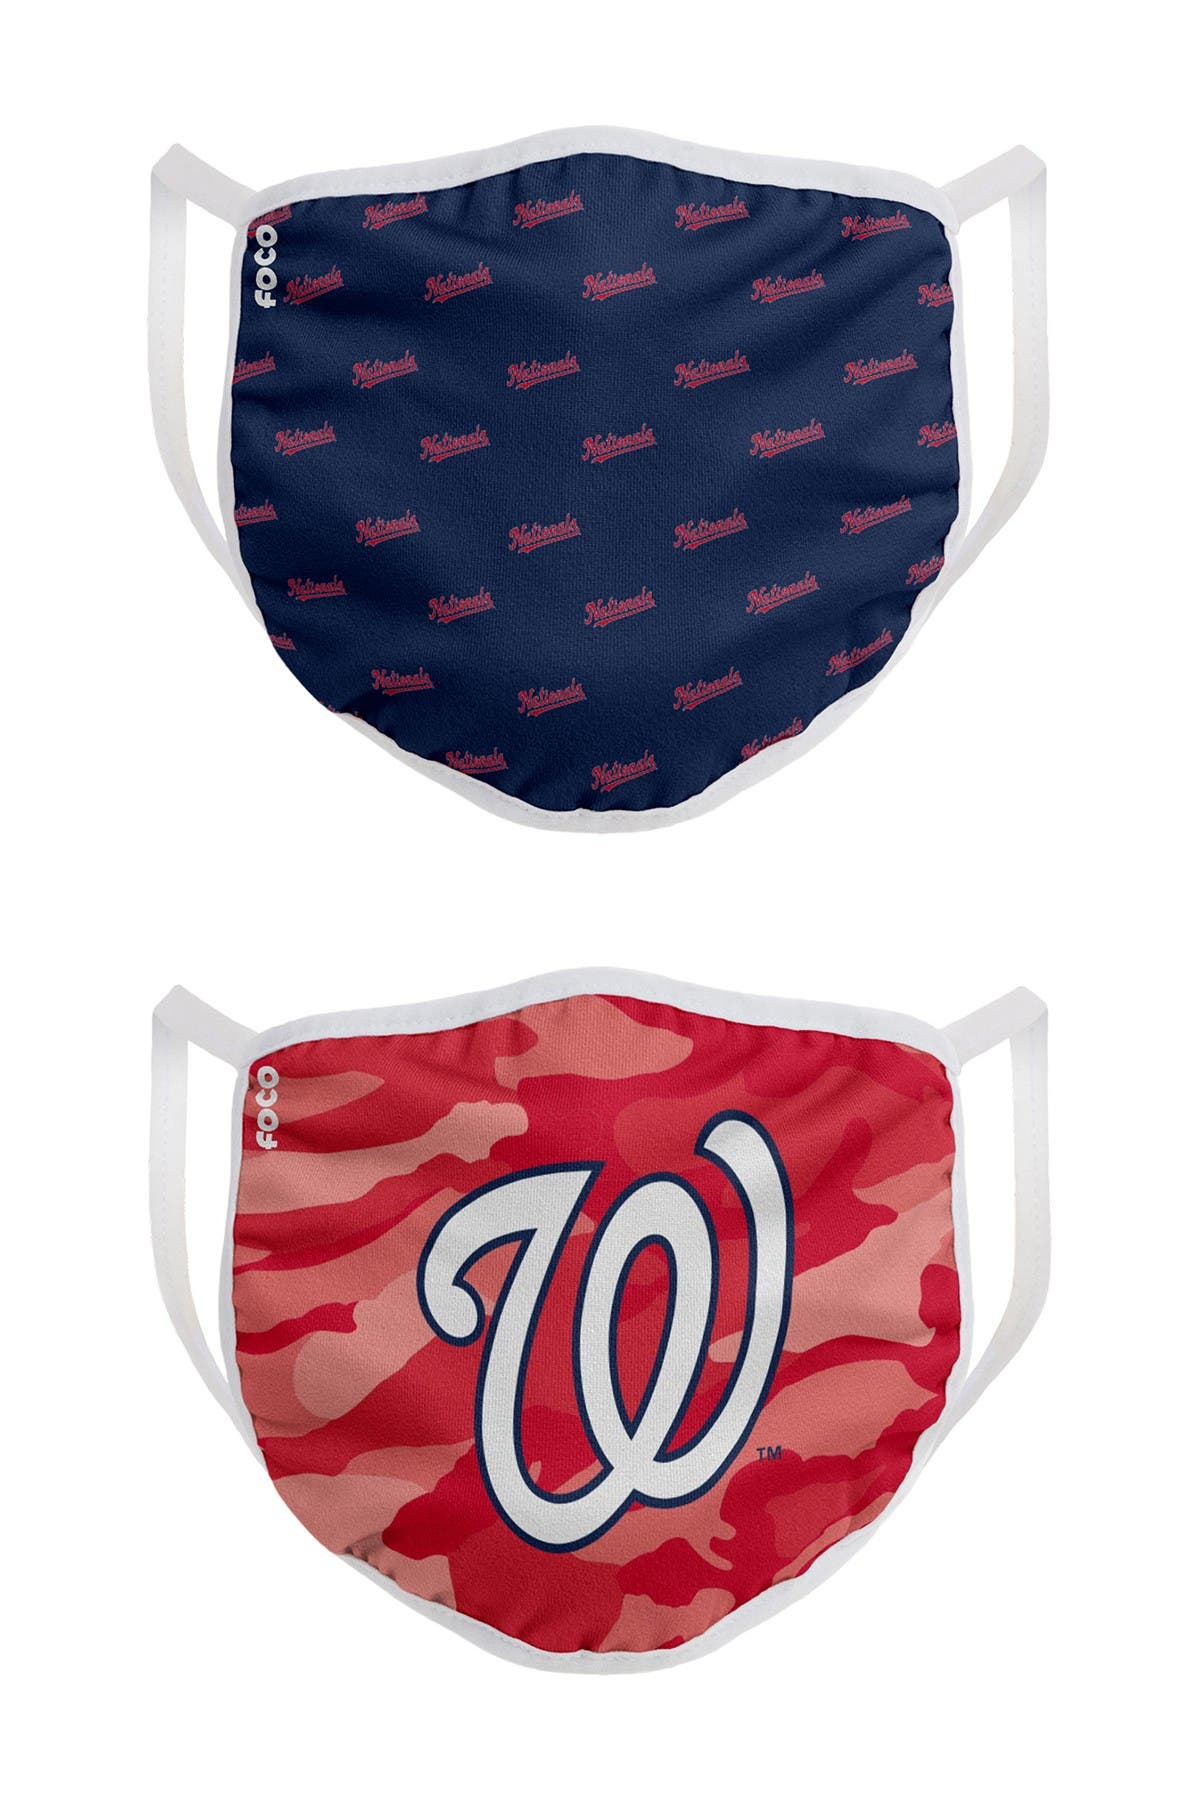 Image of FOCO MLB Washington Nationals Clutch Printed Face Cover - Pack of 2